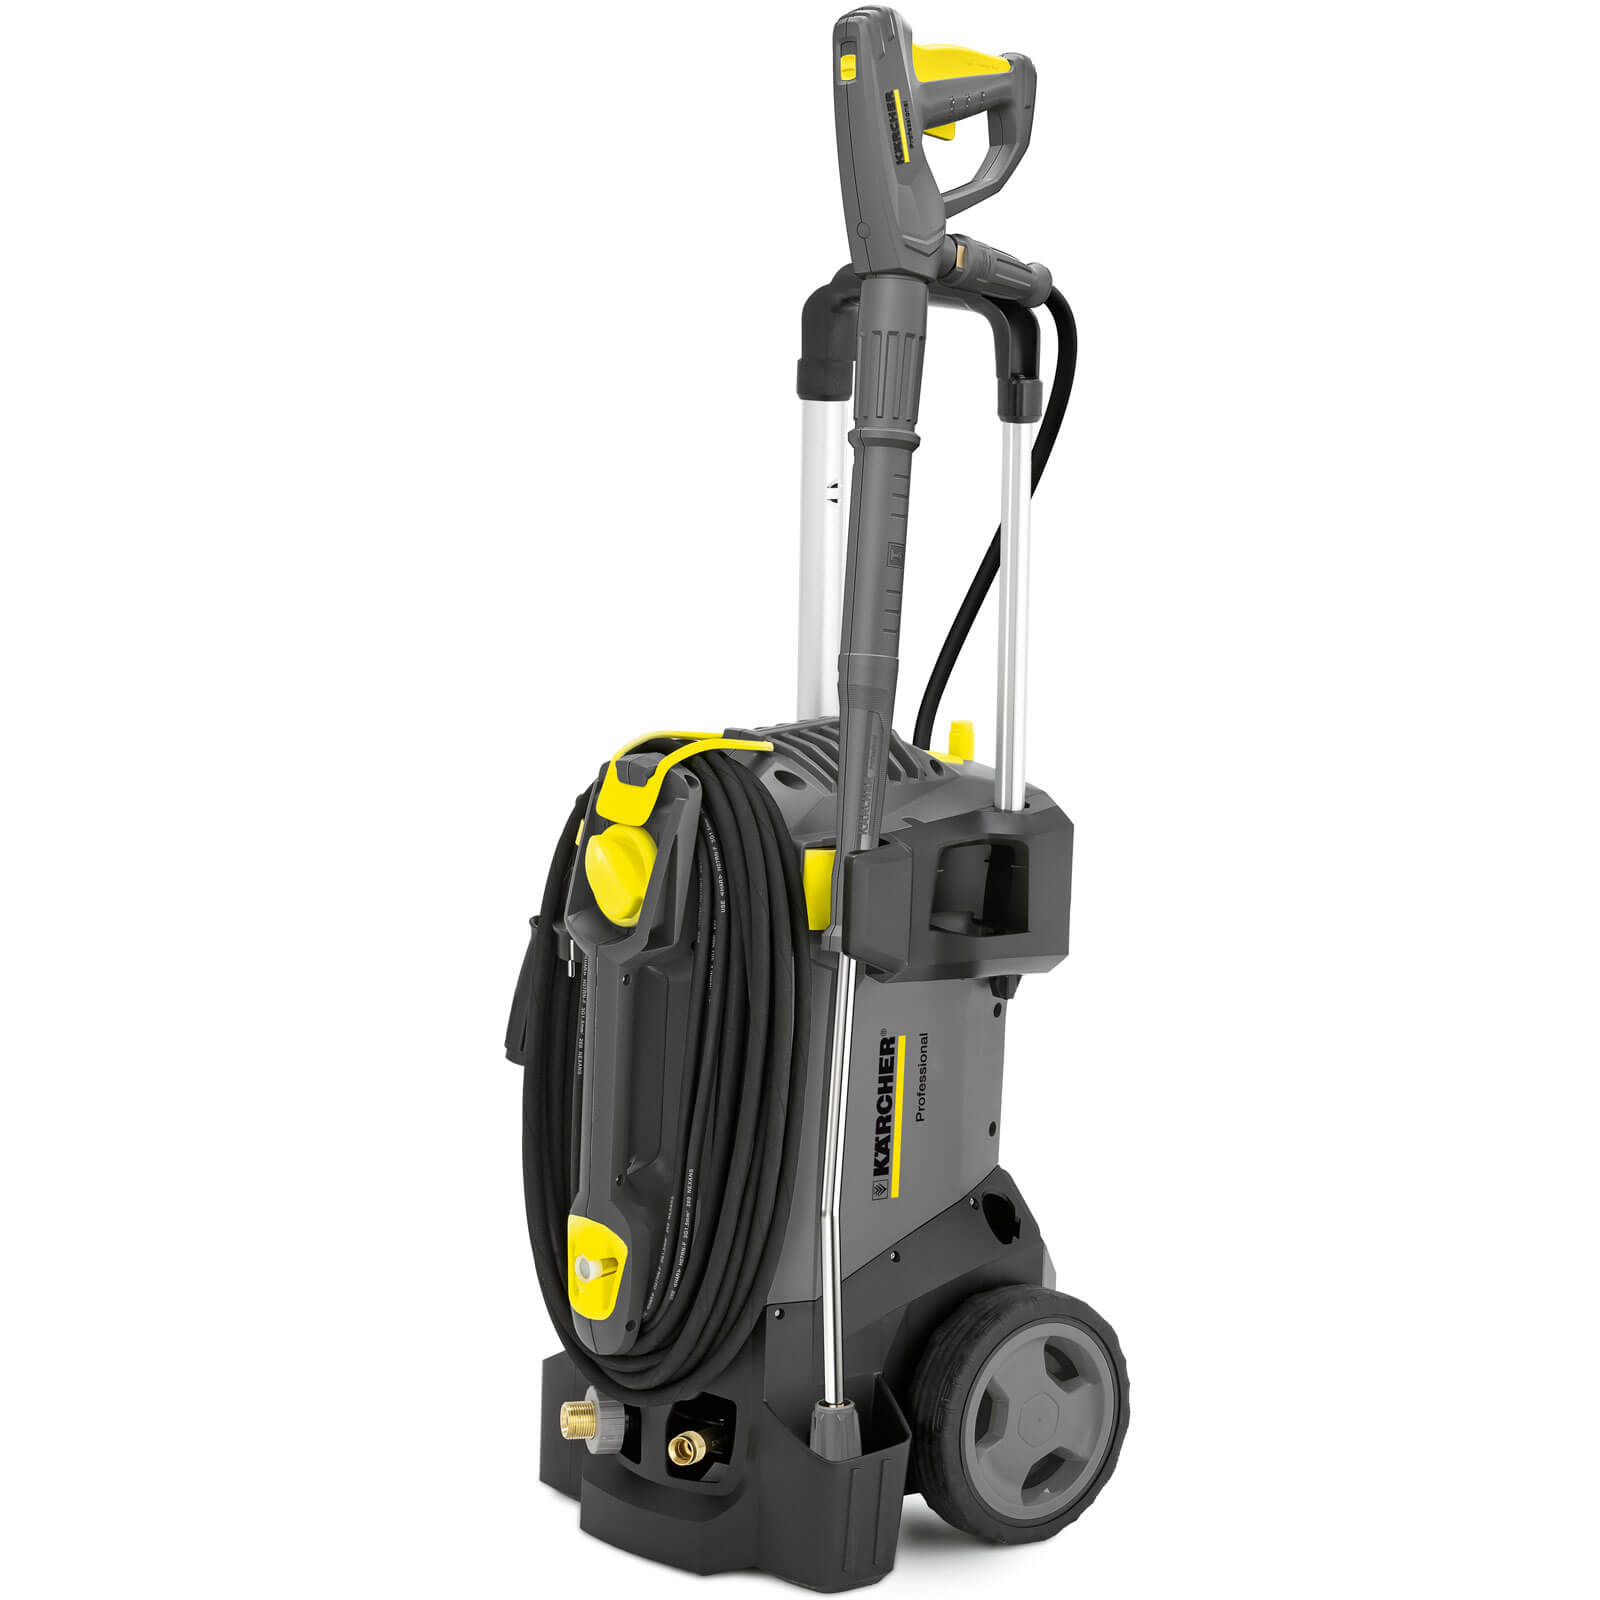 Karcher HD 512 C Plus Professional Pressure Washer 175 Bar 240v